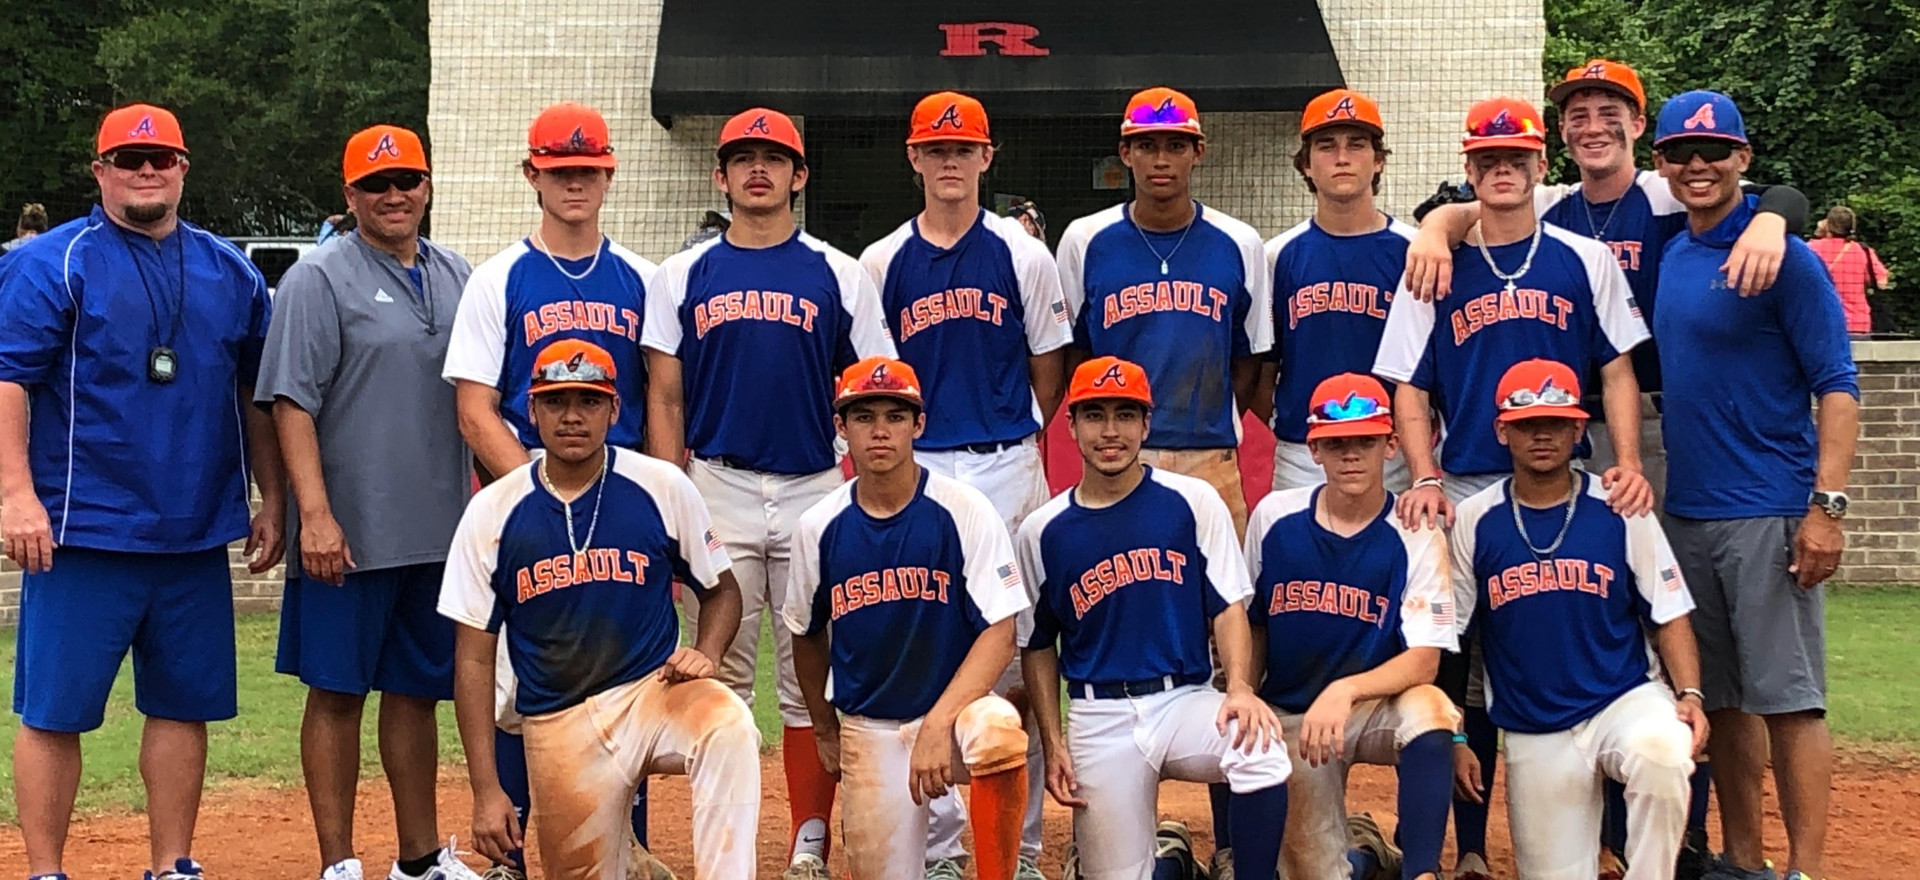 Texas Assault Baseball Records a  4-1 @ PG 15U Central Elite Championship July 2 - July 6 , 2020